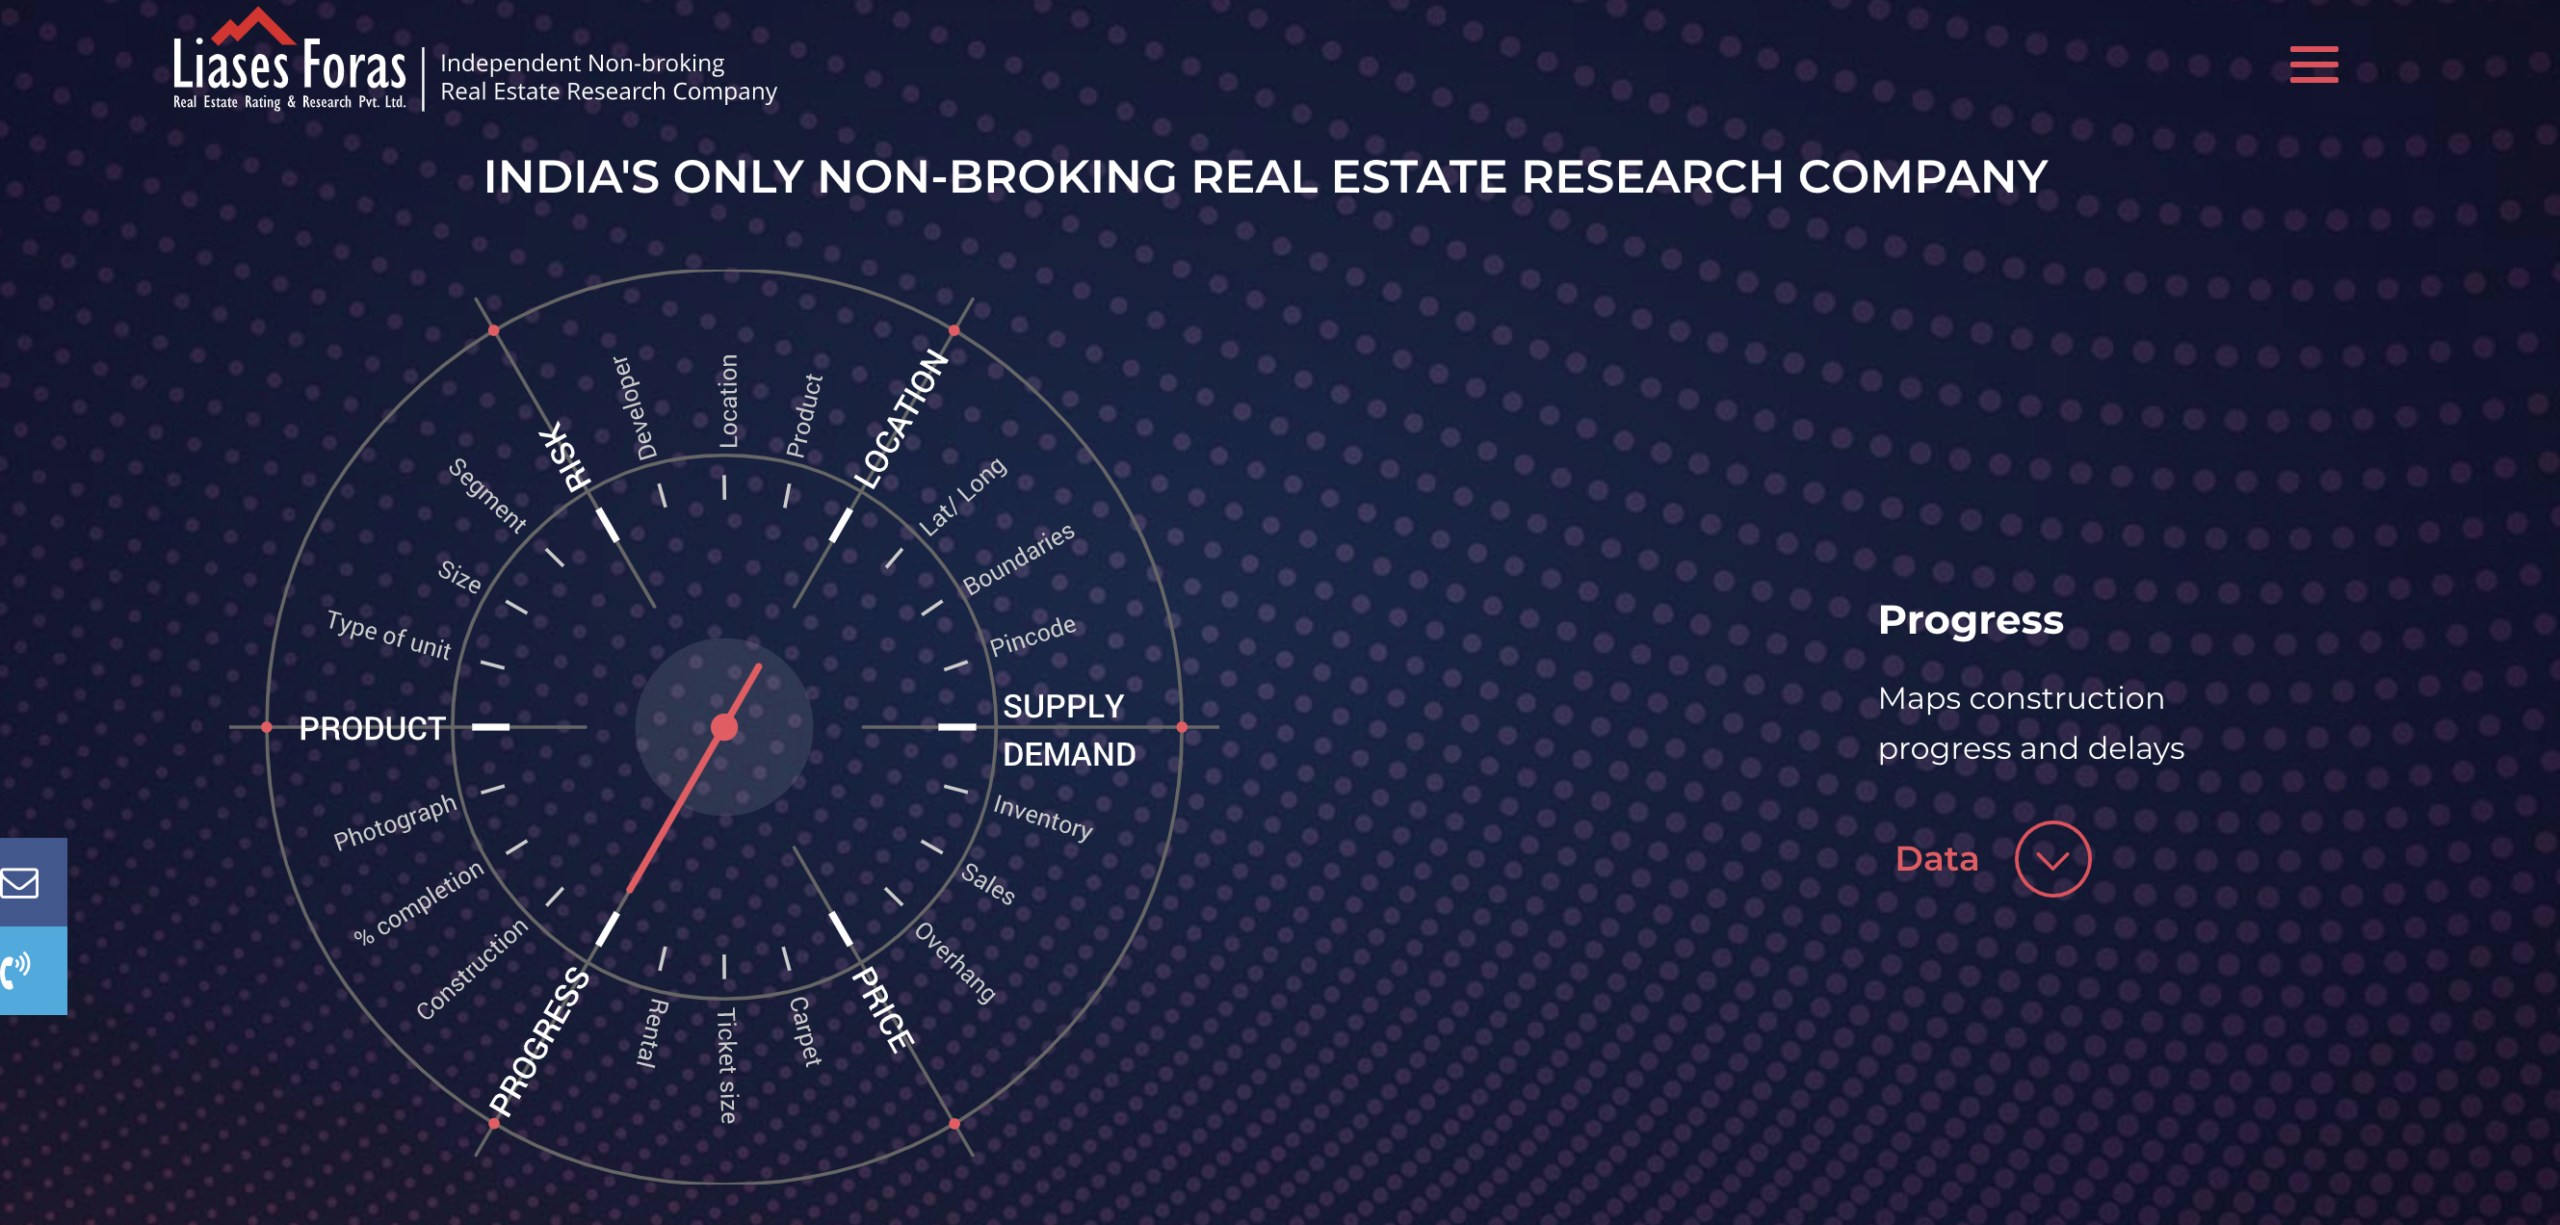 LiasesForas is the only non-brokerage real estate research company in India.